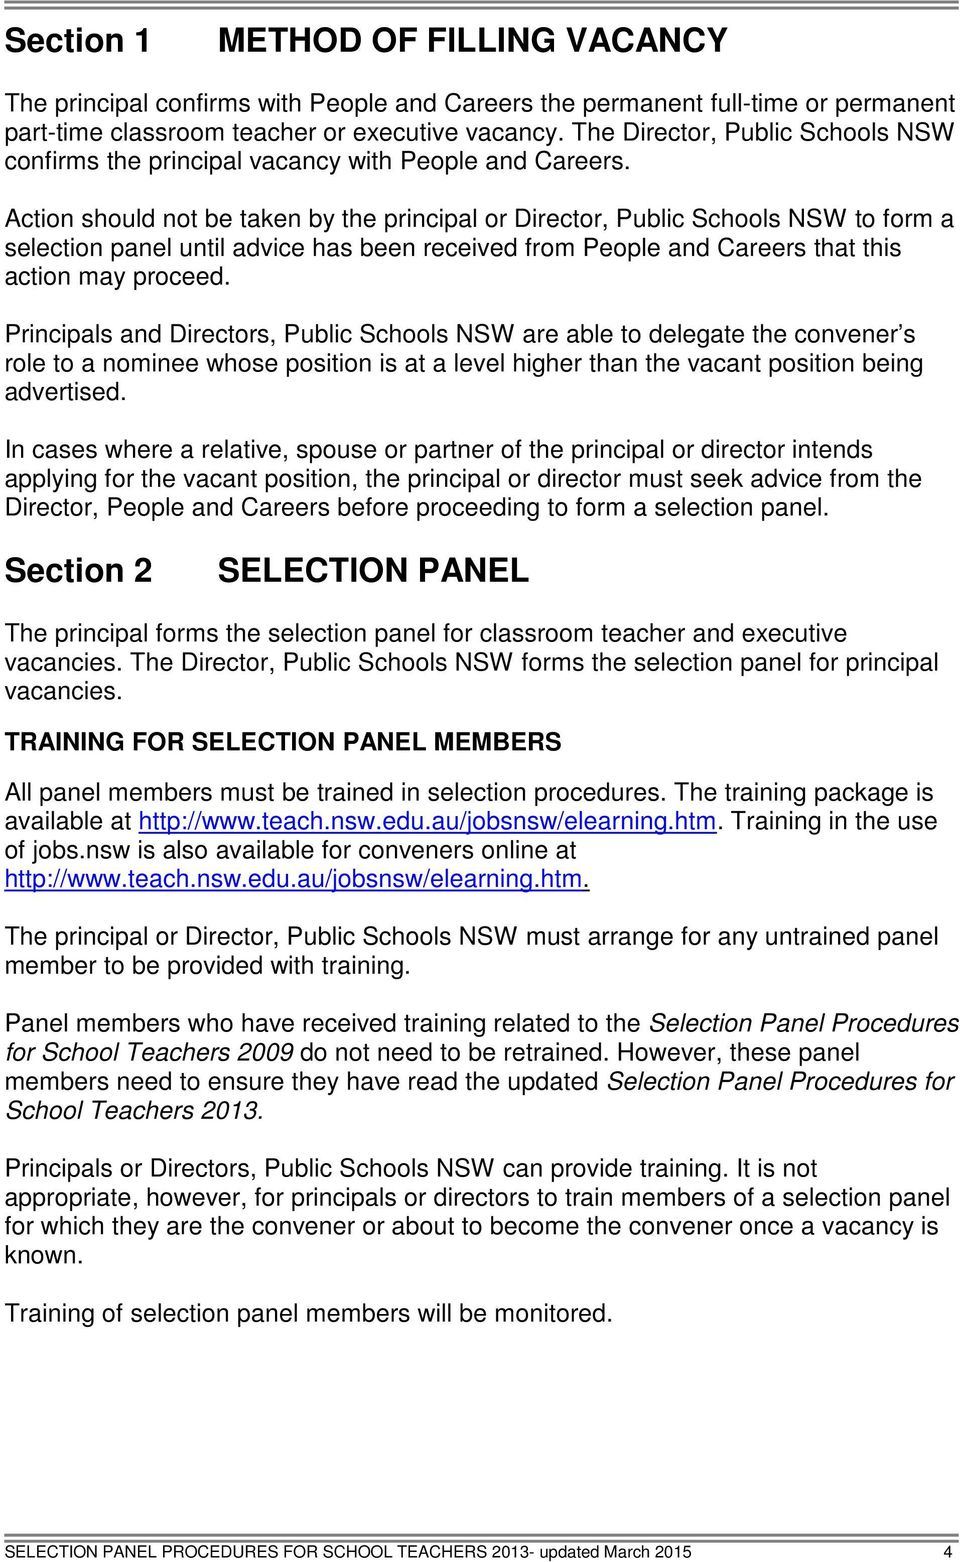 Action should not be taken by the principal or Director, Public Schools NSW to form a selection panel until advice has been received from People and Careers that this action may proceed.